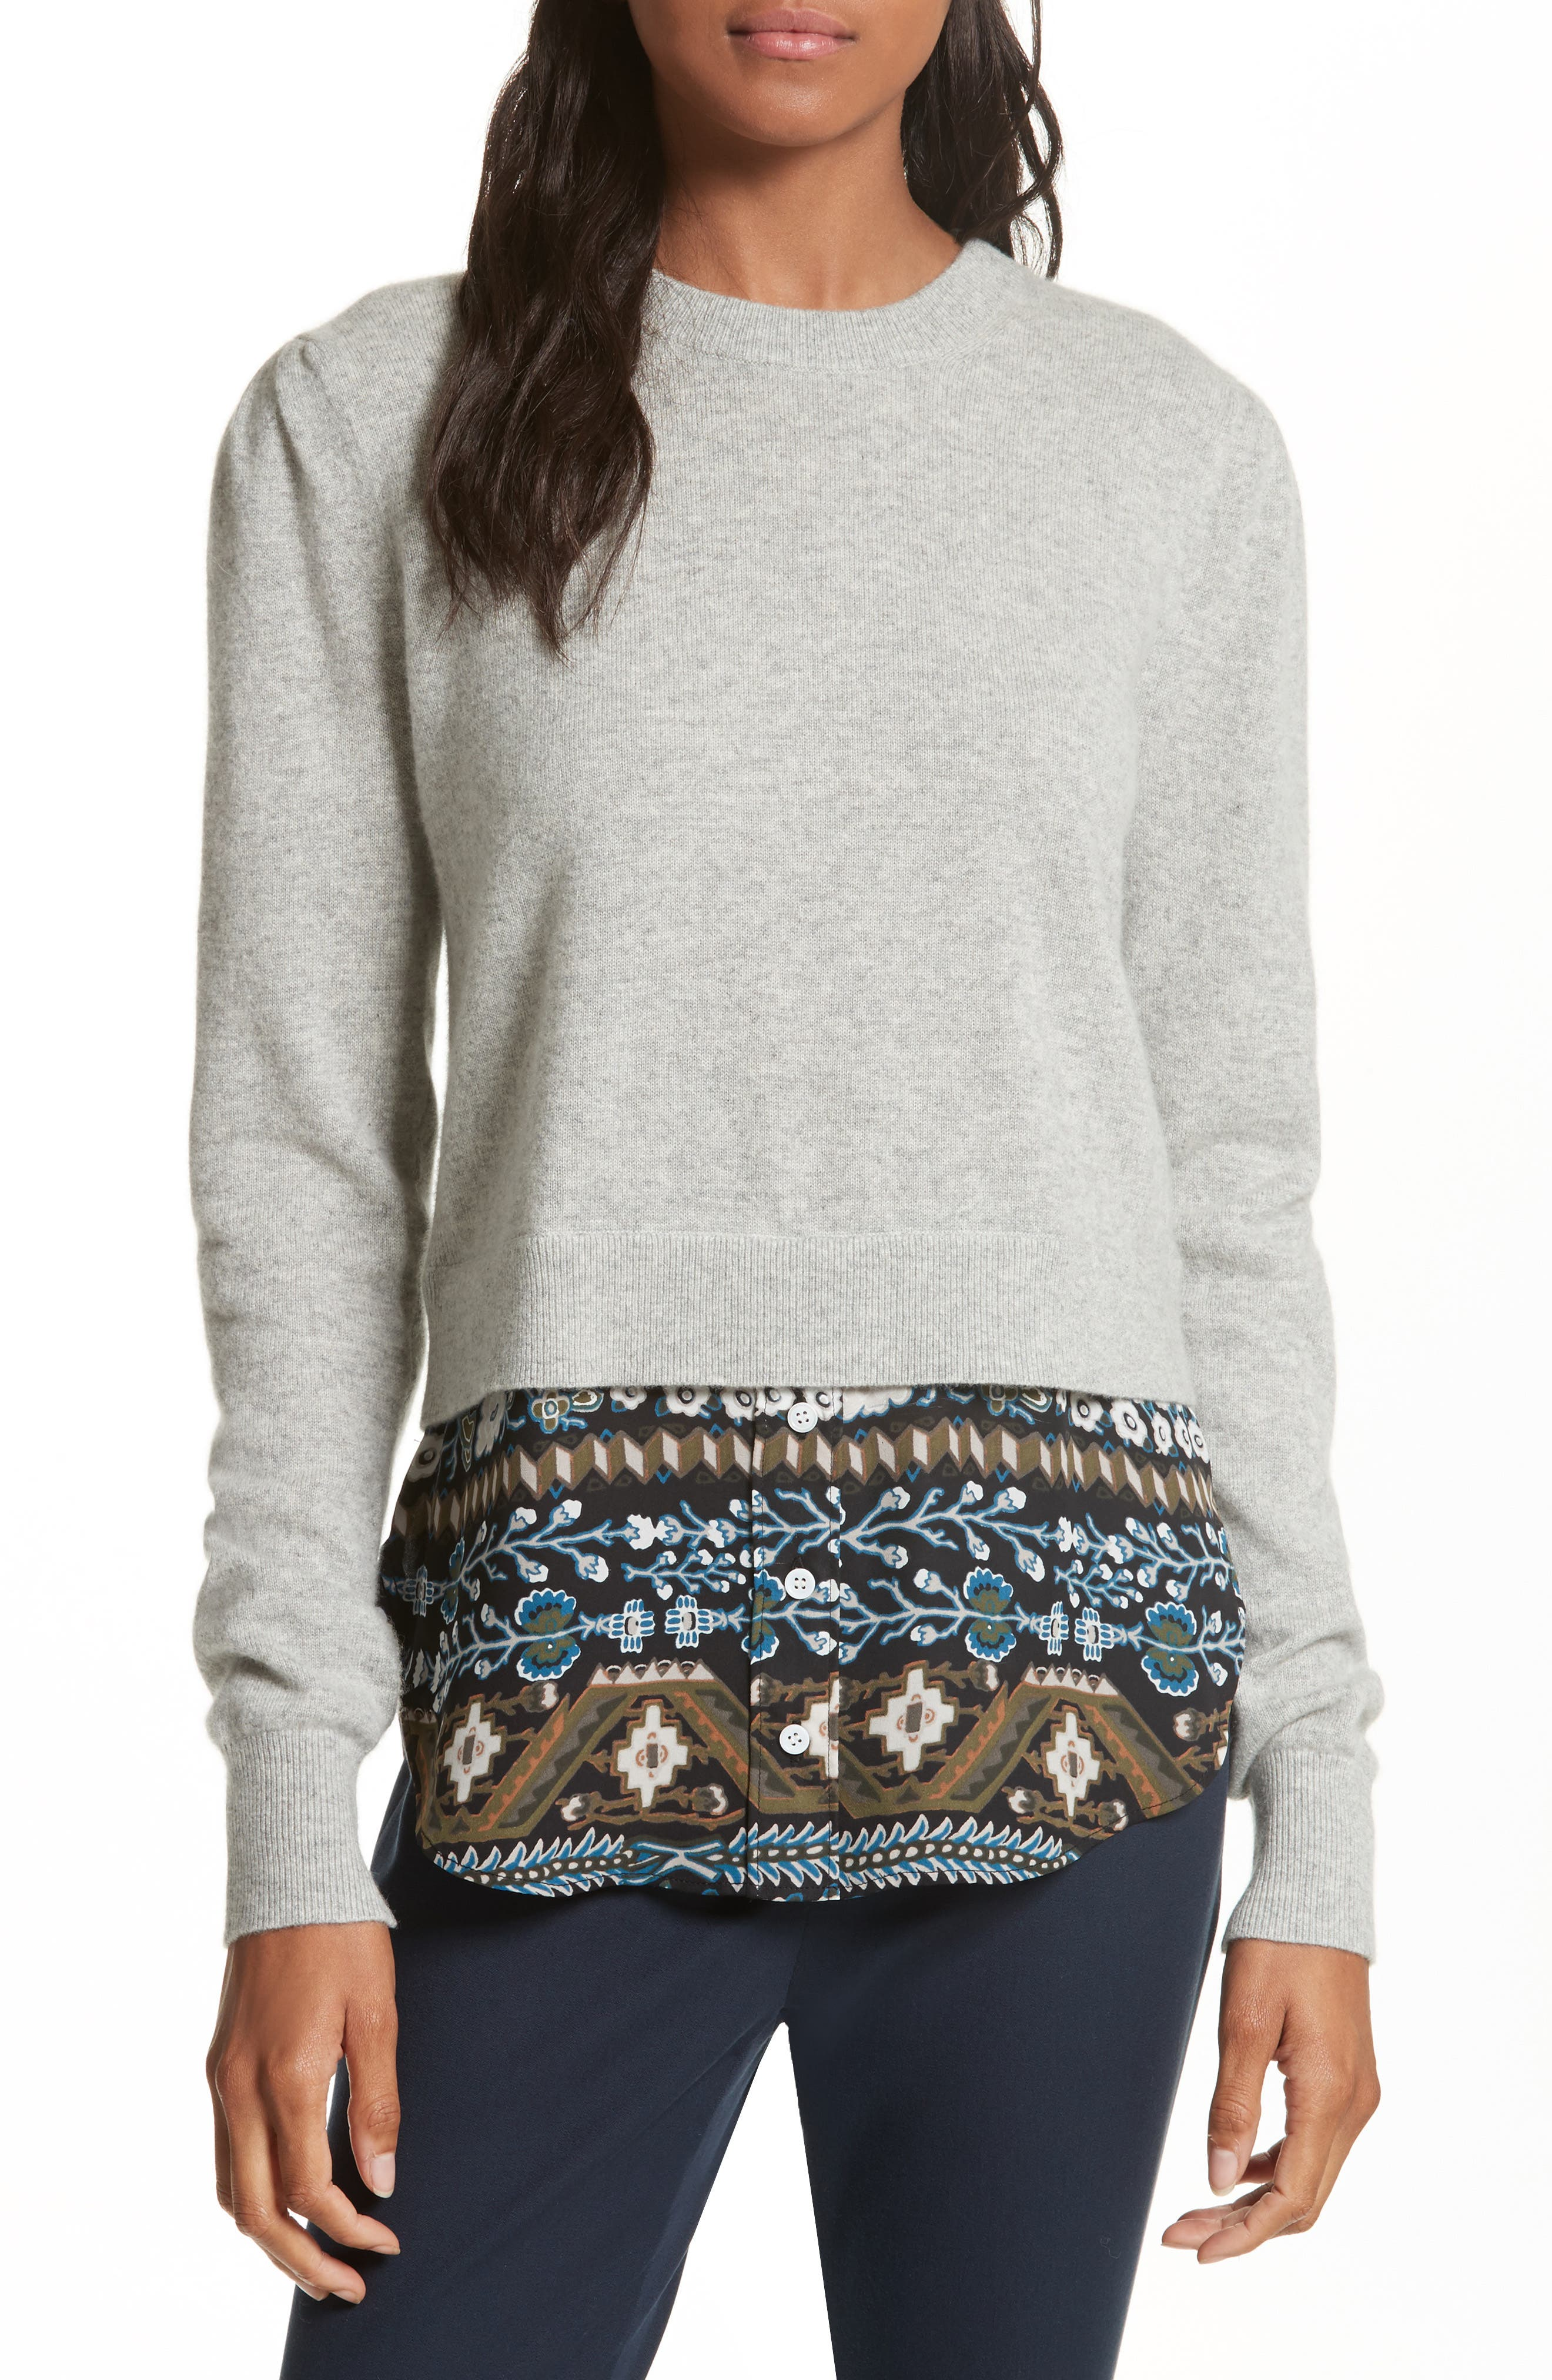 Jenson Layered Hem Cashmere Sweater,                             Main thumbnail 1, color,                             Grey/ Army/ Black Aztec Print